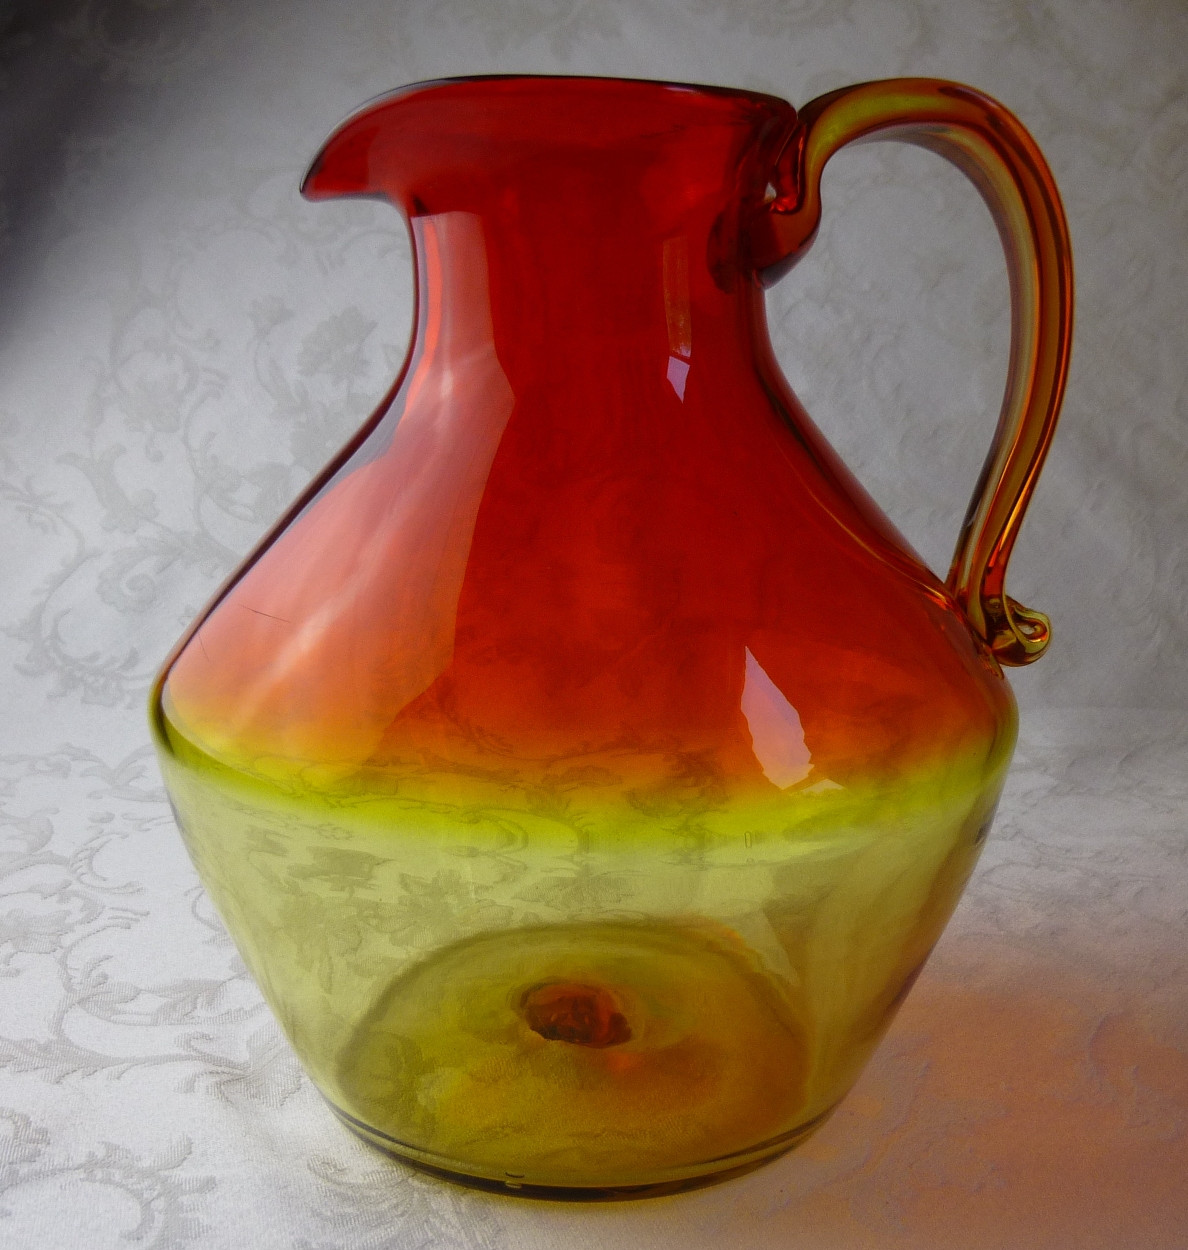 waterford footed vase of all products in pertaining to click to view image